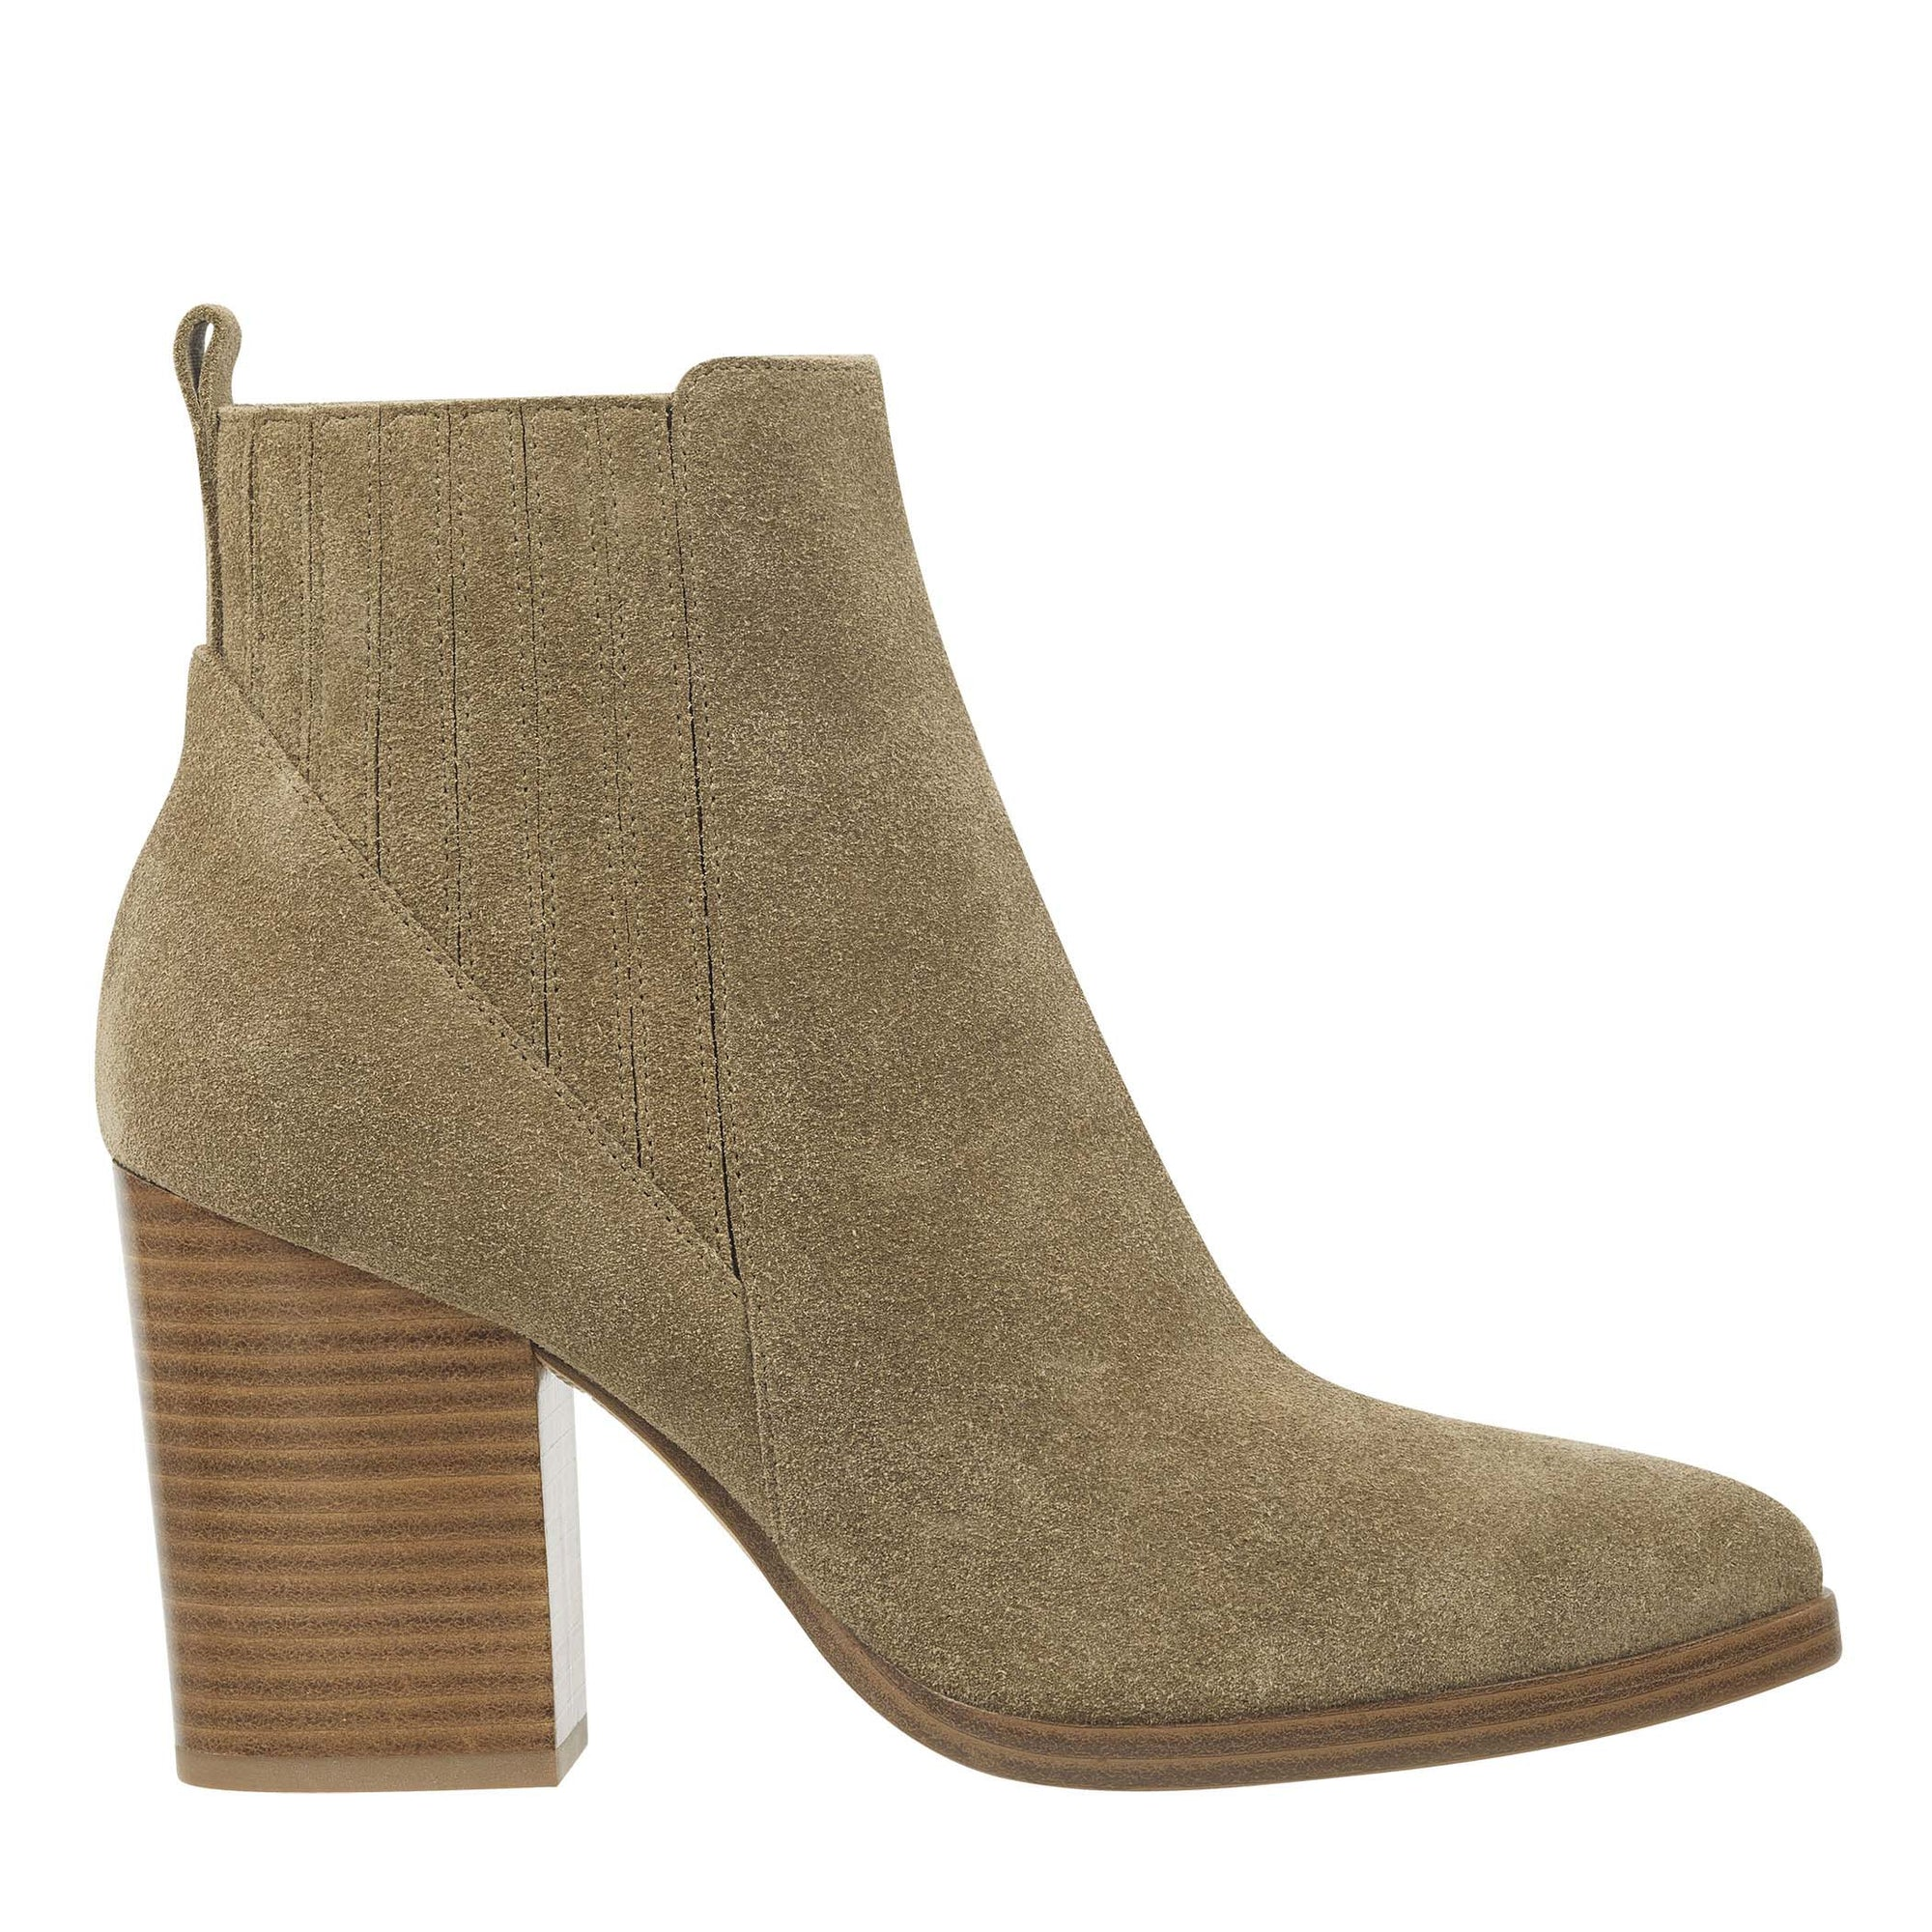 alva-pointy-toe-bootie-in-taupe-suede